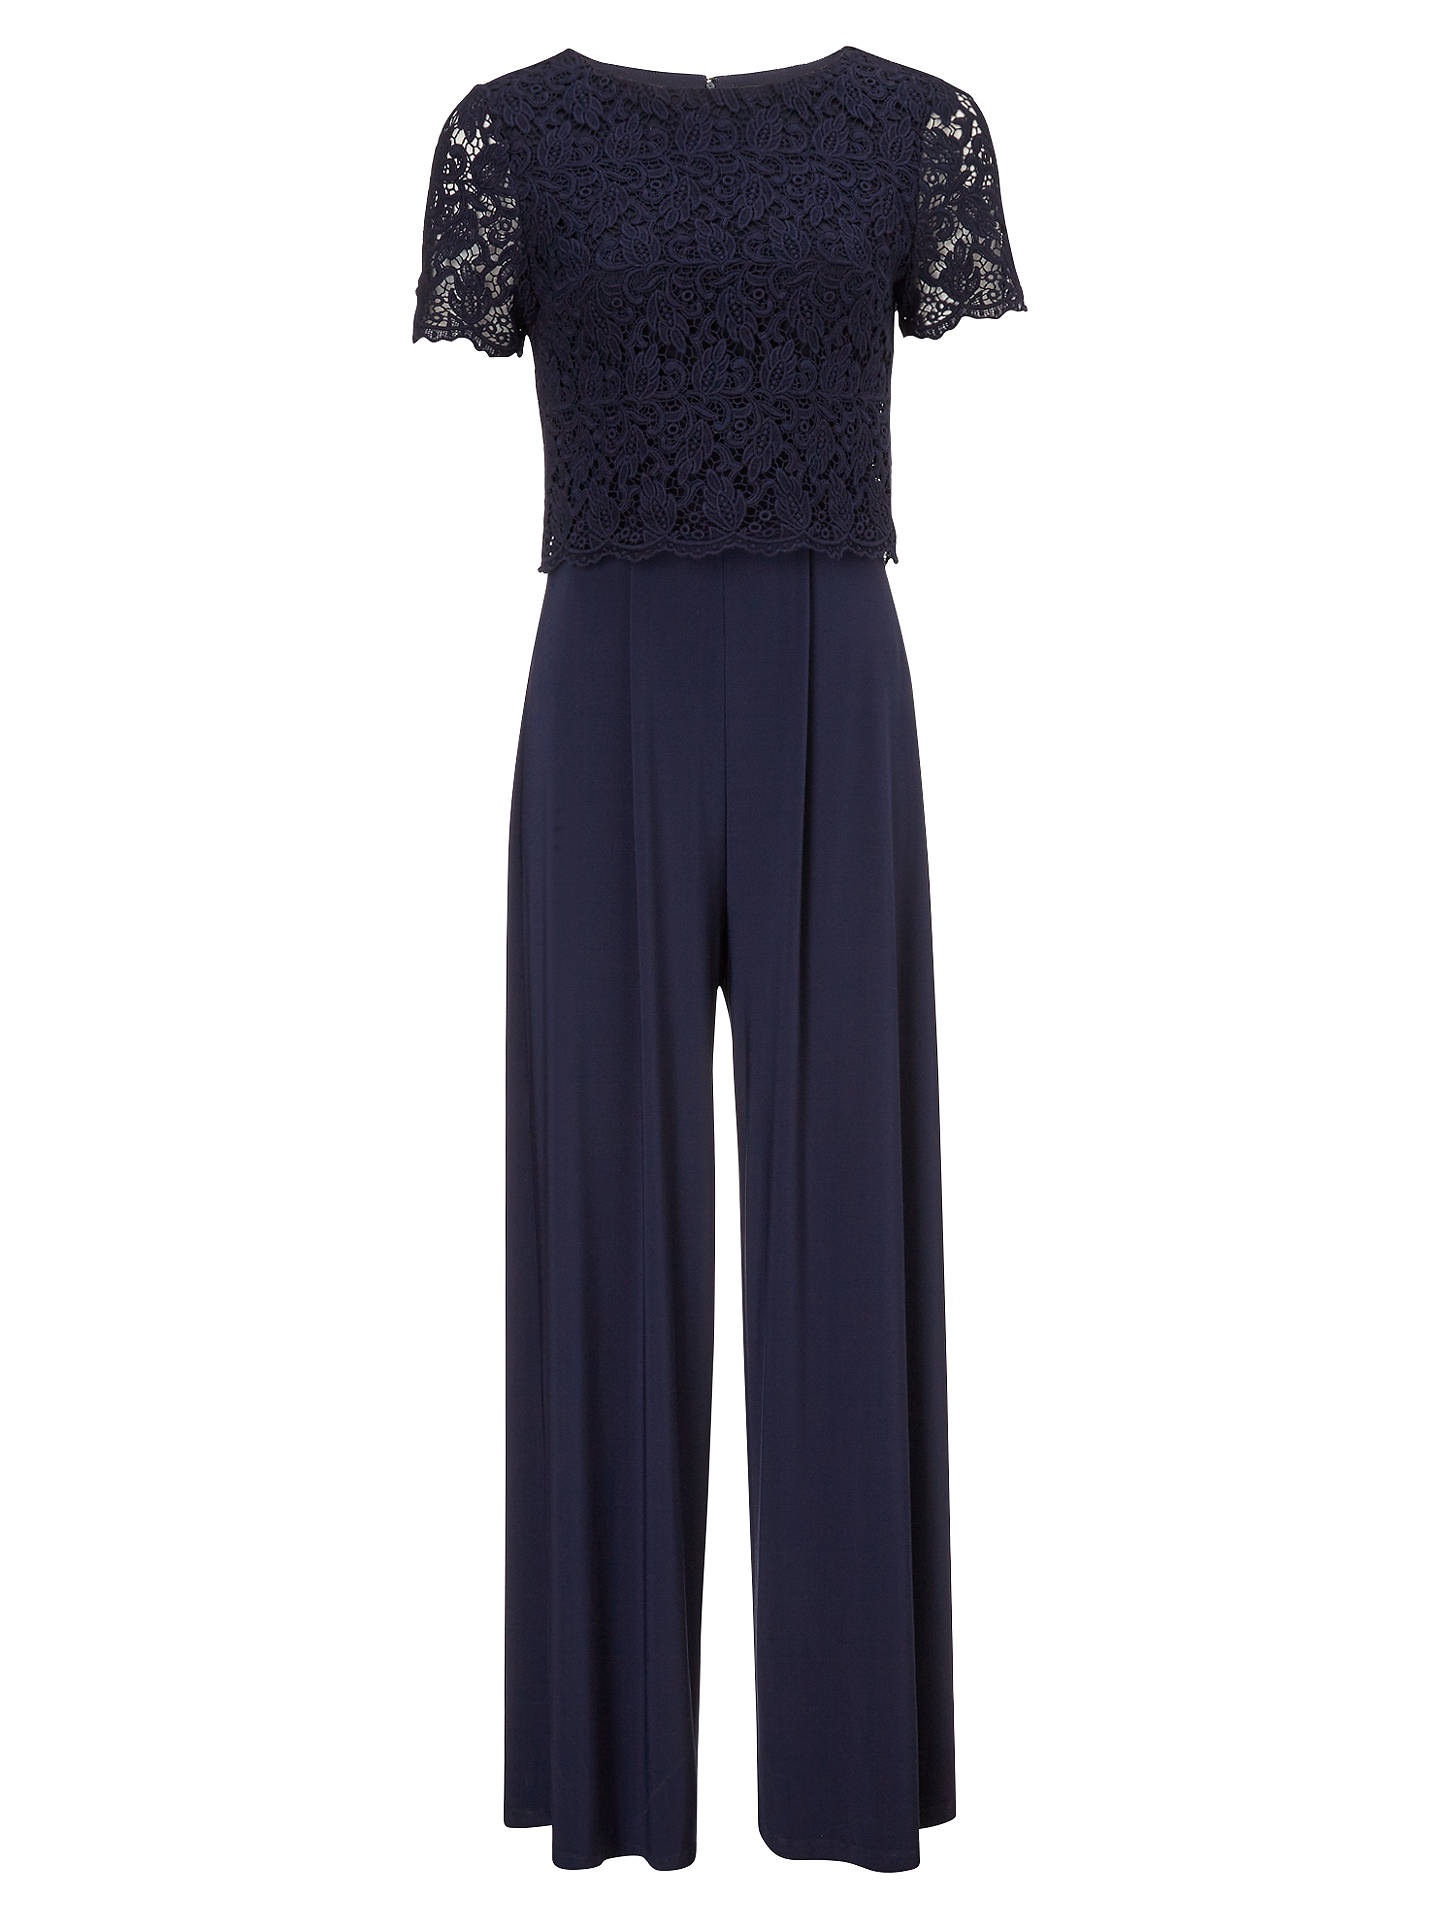 8a3d0c5c11c5 Buy Phase Eight Asami Lace Top Jumpsuit